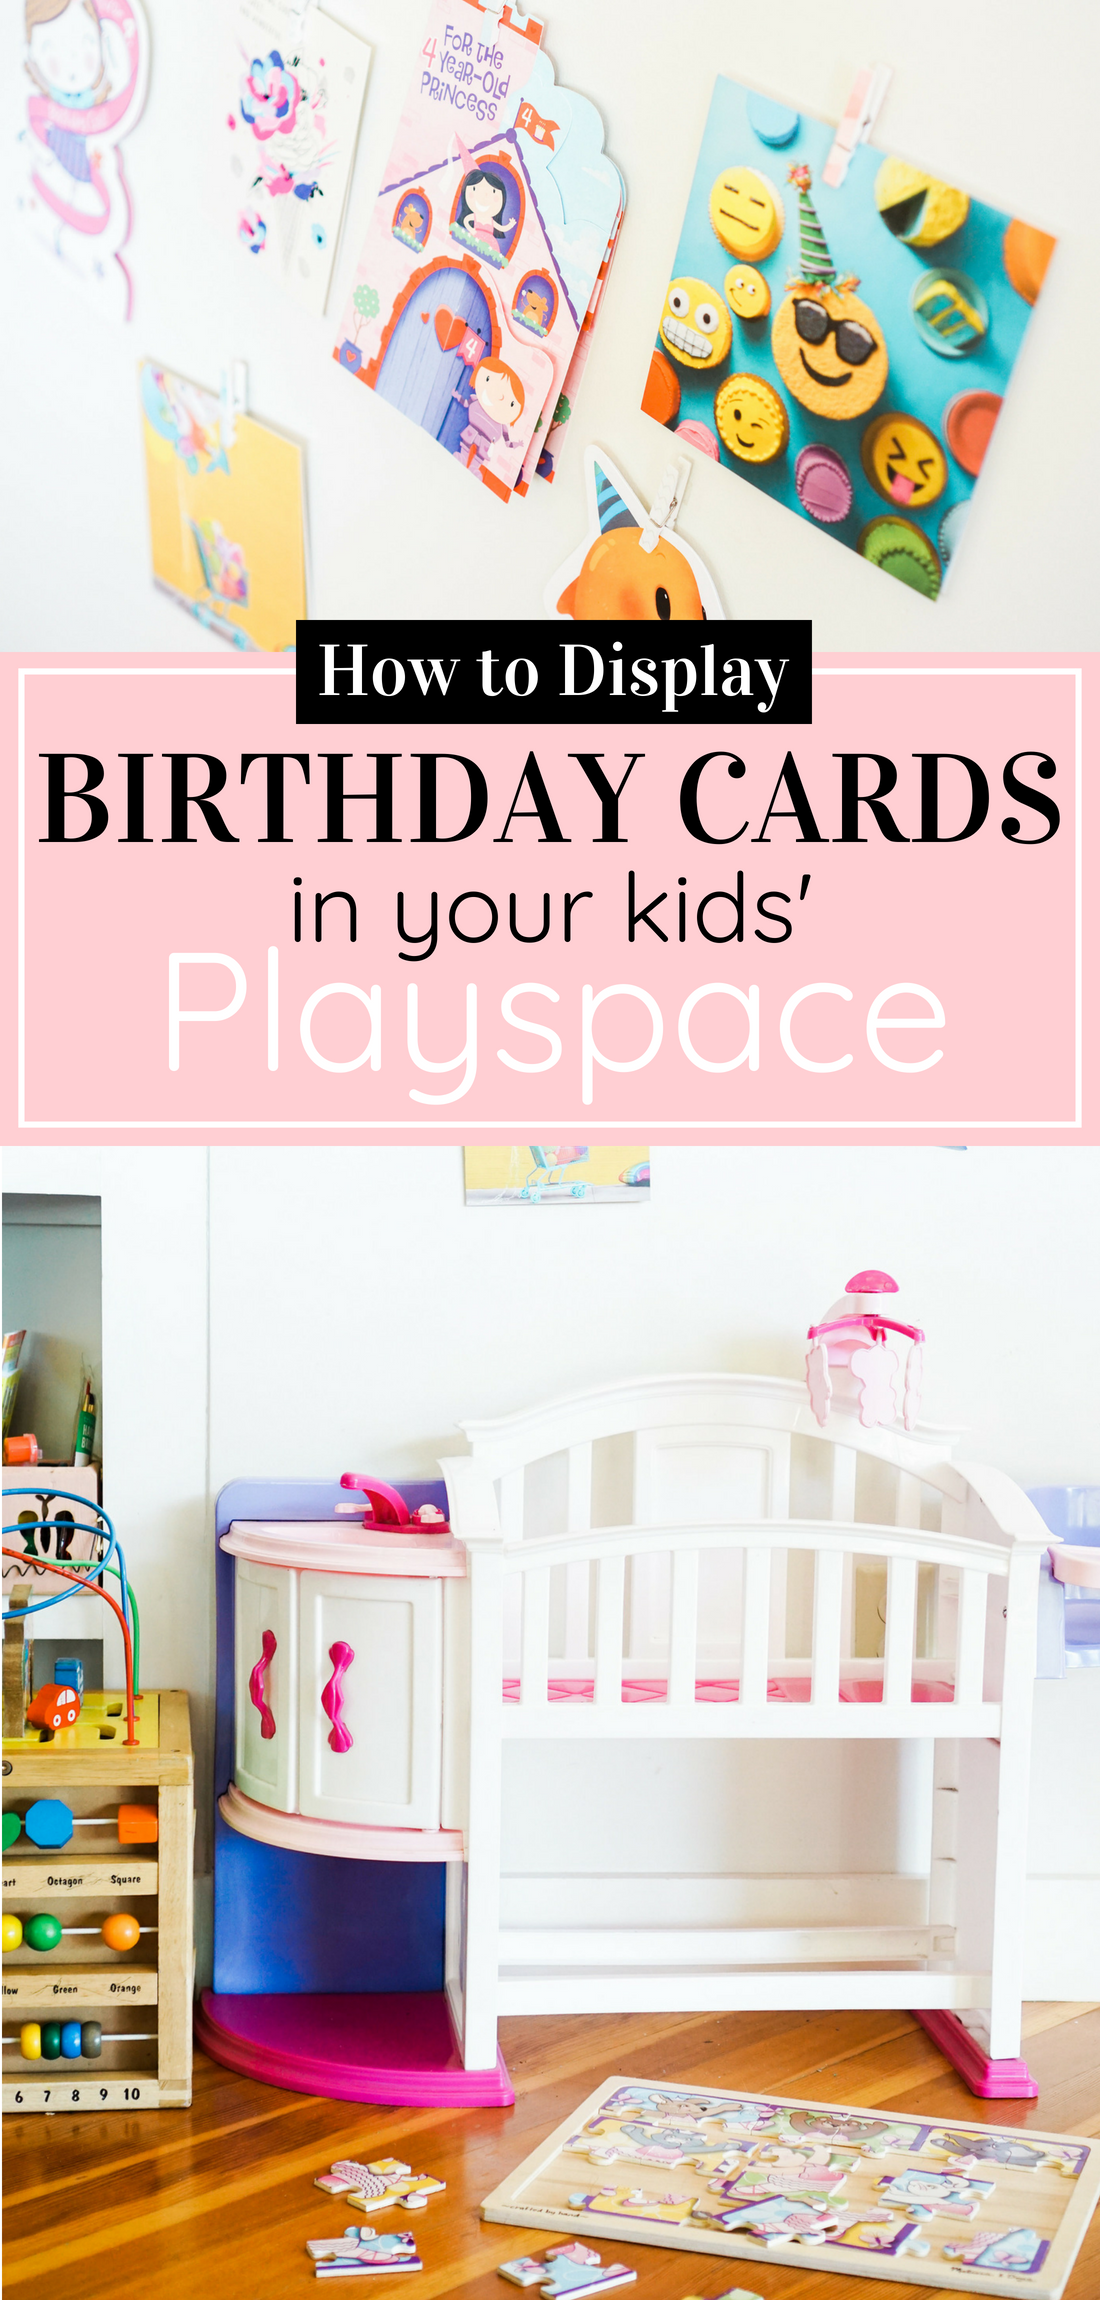 Celebrate your little ones' birthdays in memorable ways with this adorable birthday tradition: a sweet way to display cards in your kids' playspace. #birthday #greetingcards #playspace Click through for the details. | glitterinc.com | @glitterinc